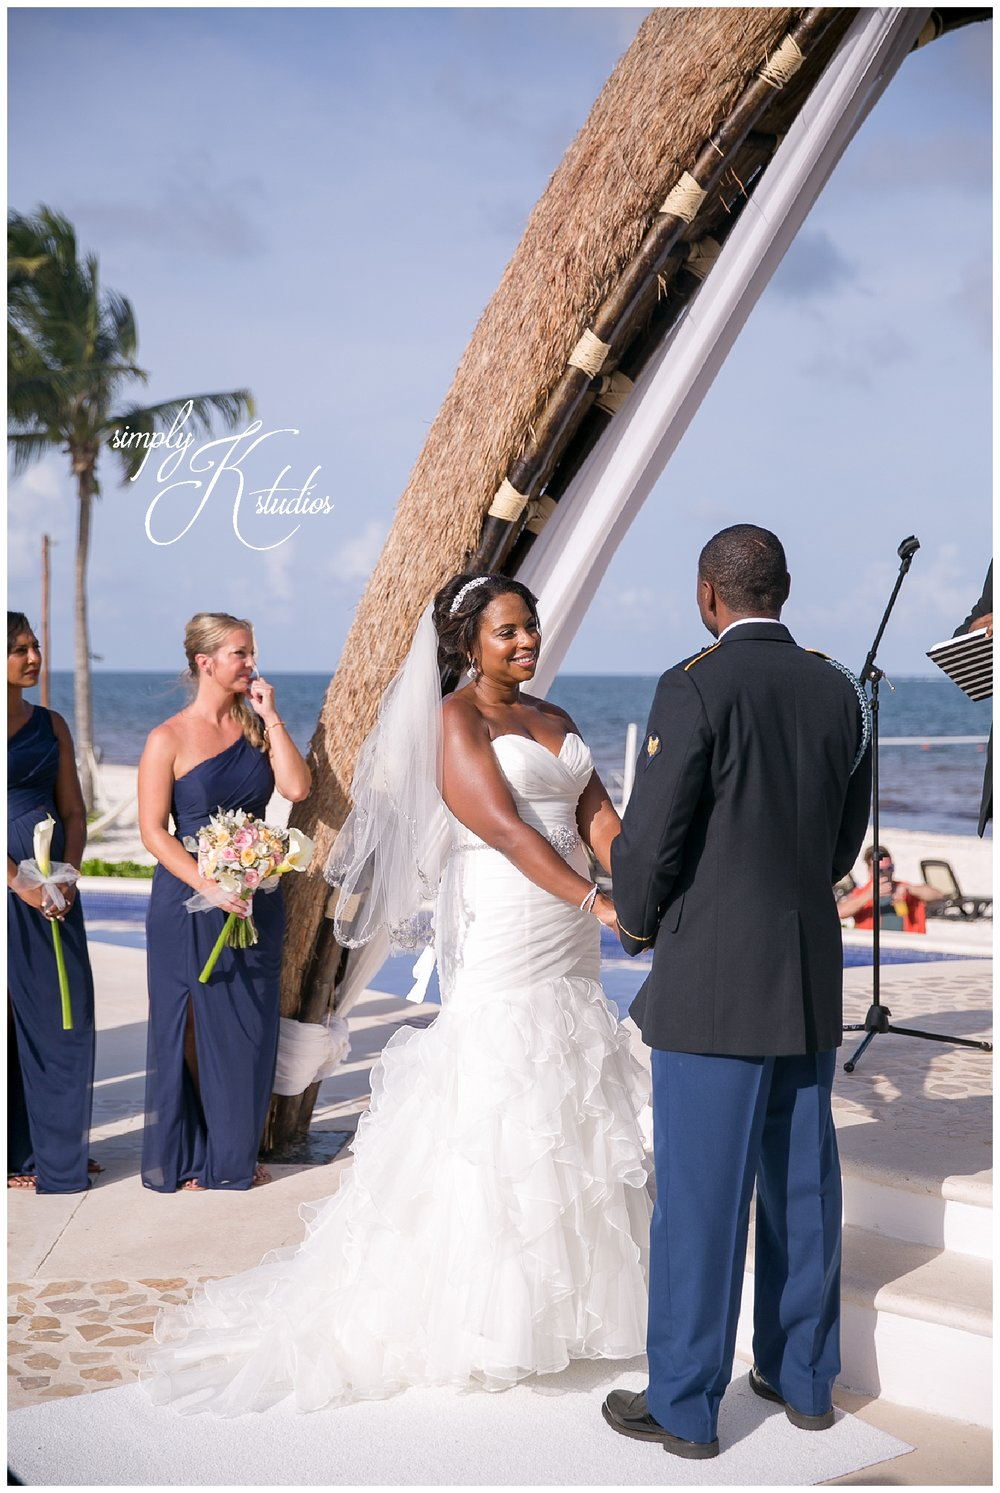 Dreams Riviera Cancun Wedding Ceremony.jpg